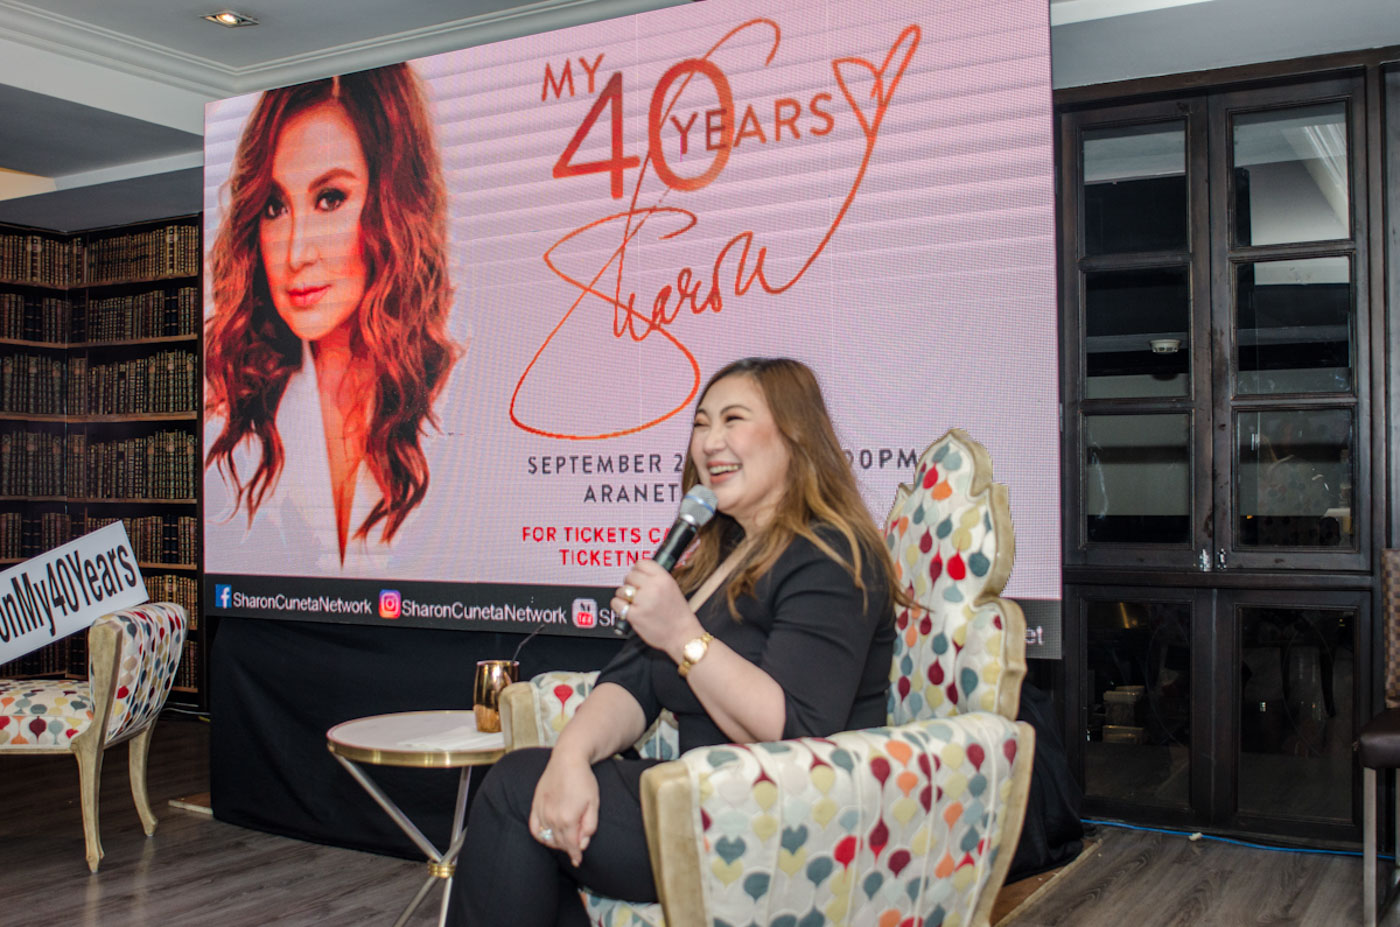 SOCIAL MEDIA. Aside from her personal Instagram, Sharon Cuneta's presence will be felt through the Sharon Cuneta Network on YouTube, Facebook, and Twitter. Photo by Rob Reyes/Rappler